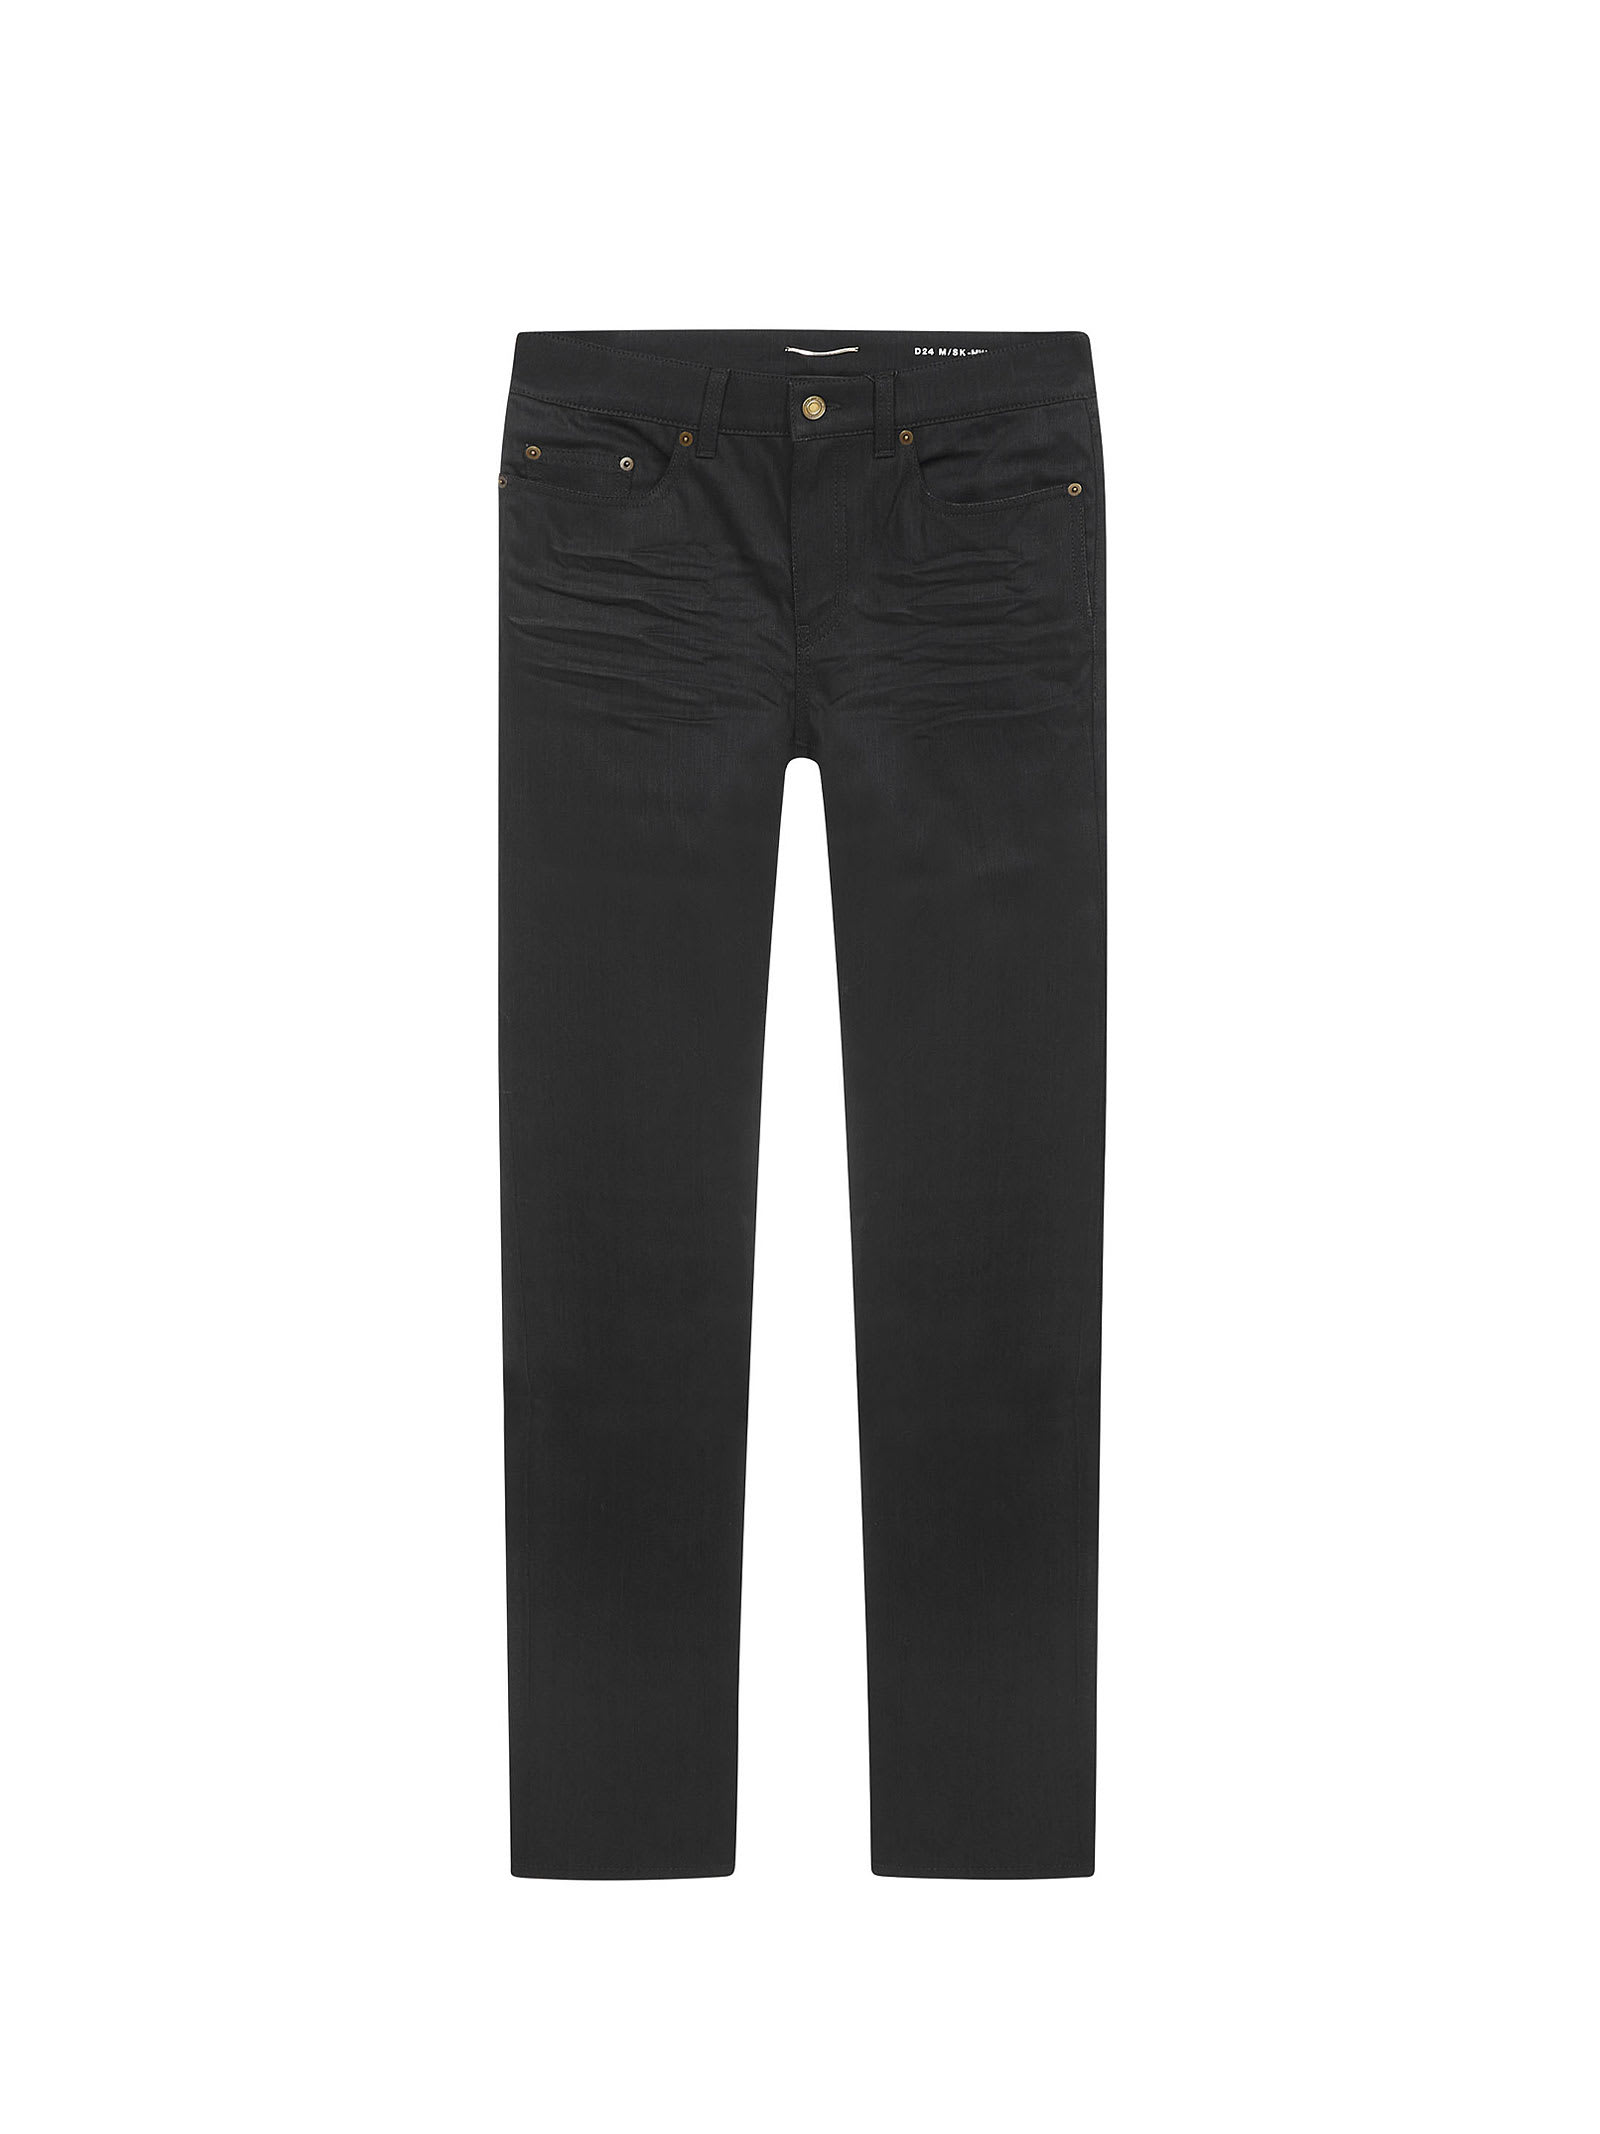 Saint Laurent jeans in black stretch cotton. Composition: Cotone, 2% Elastan